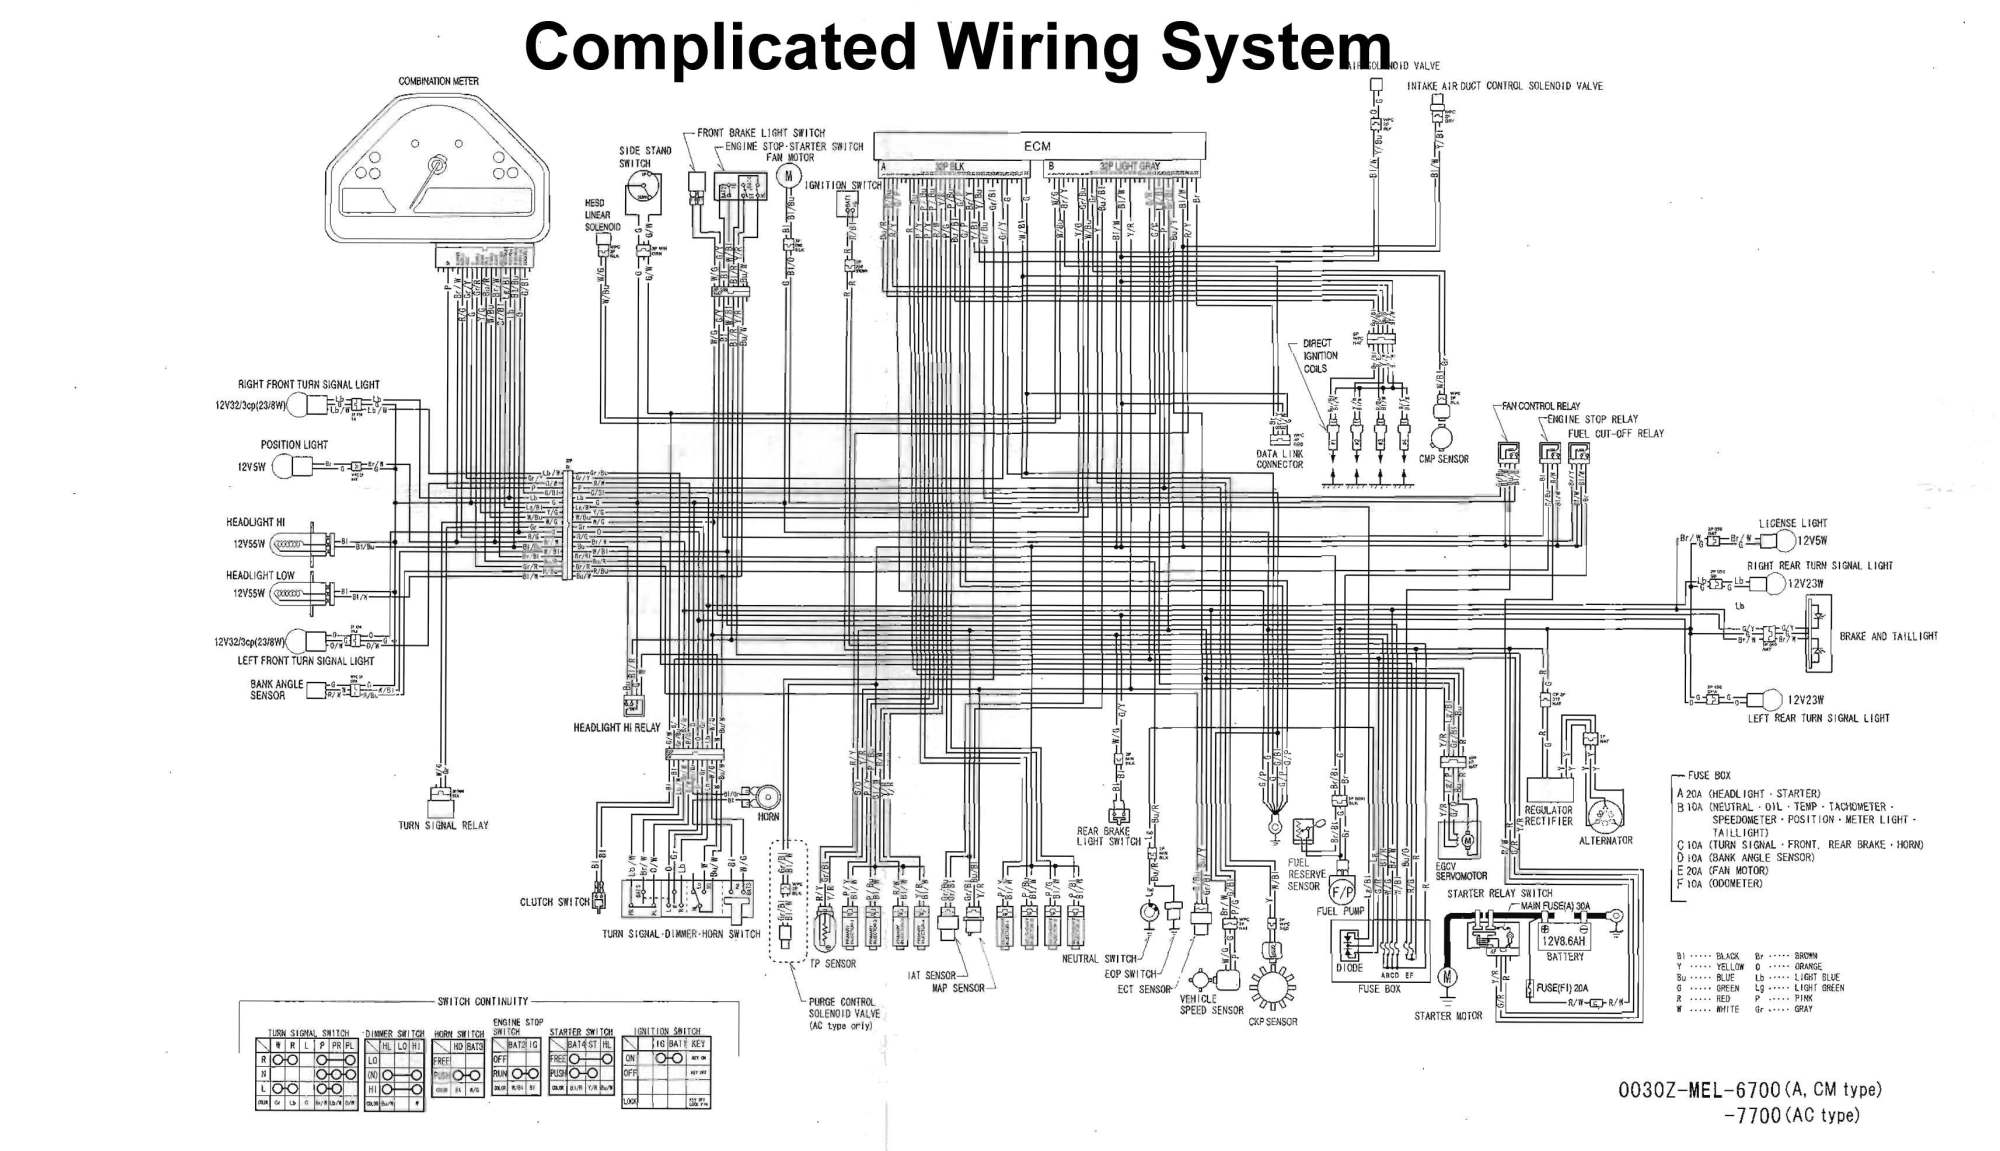 hight resolution of however if we want all the fun stuff we put on our motorcycles to work we have to have what is essentially a combination of many different wiring